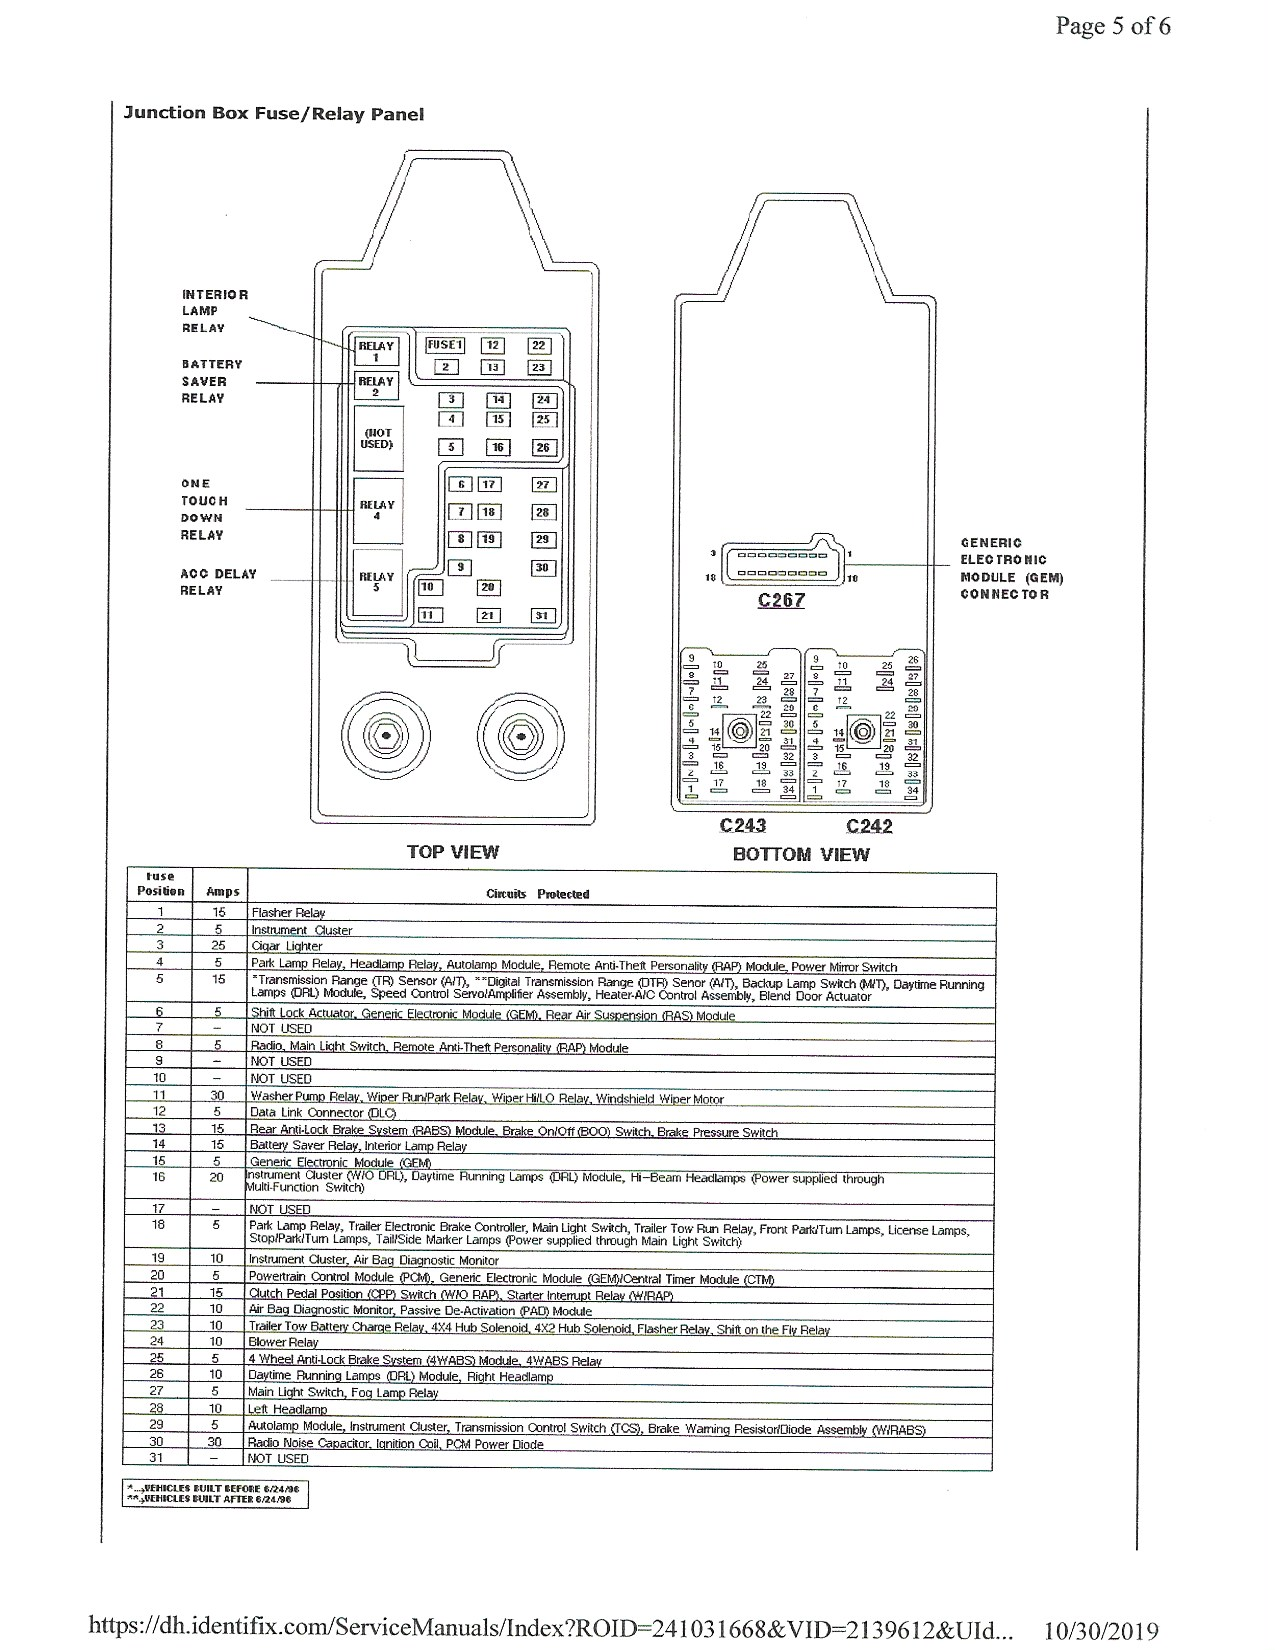 97 F150 Fuse Box In Truck Doesn U2019t Match The Diagrams In